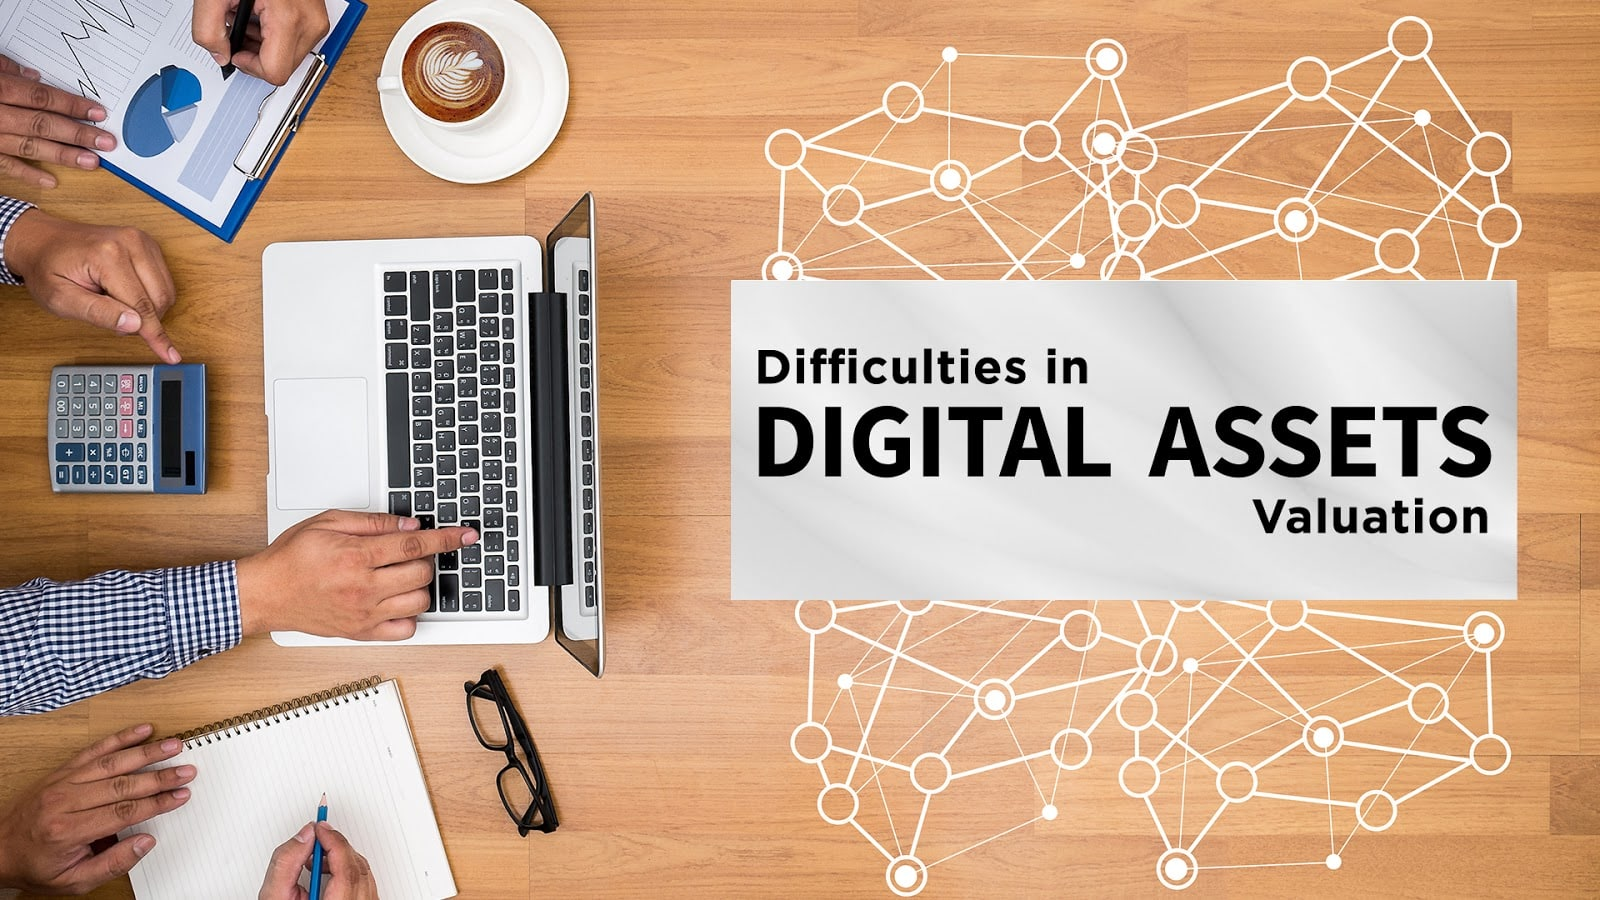 Difficulties in Digital Asset Valuation